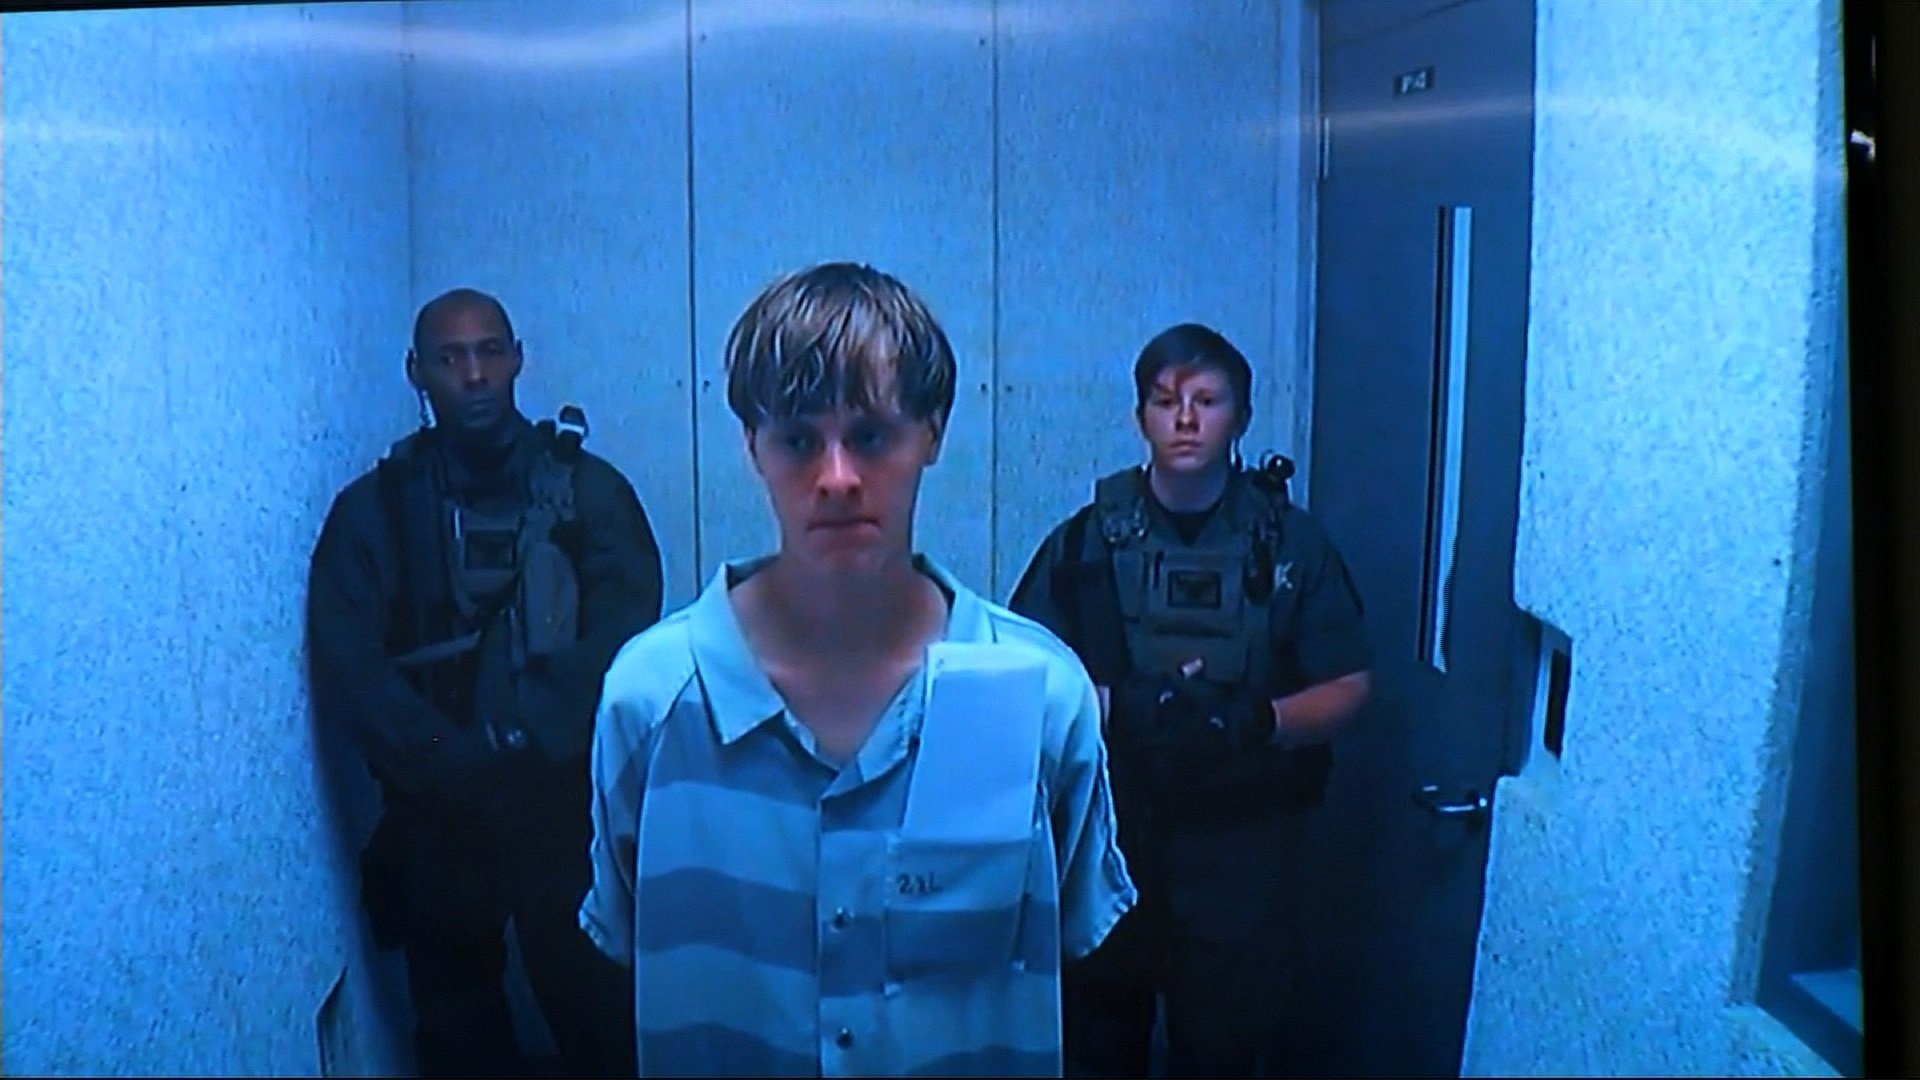 Sister Of Domestic Terrorist Dylann Roof Arrested, Found With Drugs & Weapons